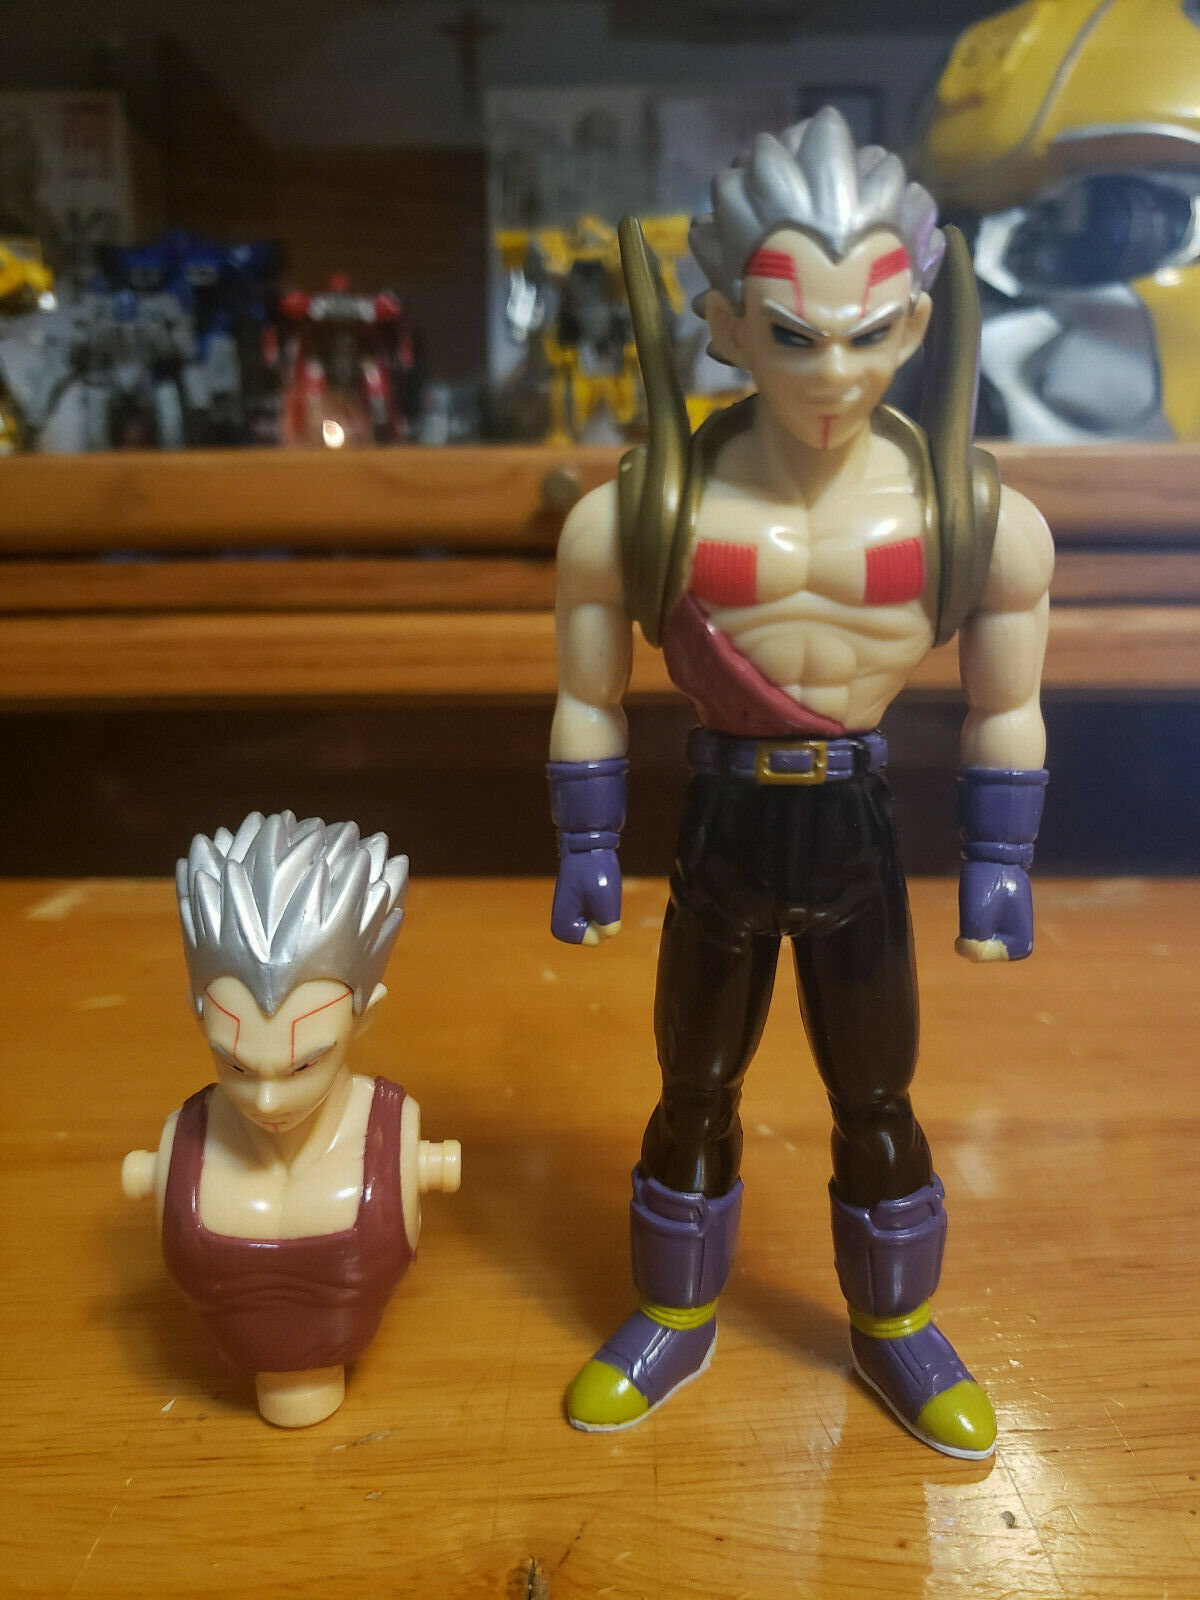 Character:GT Super Baby Vol 34:BANDAI Dragonball Z  and Dragon Ball GT super battle collection AB Toys & Irwin